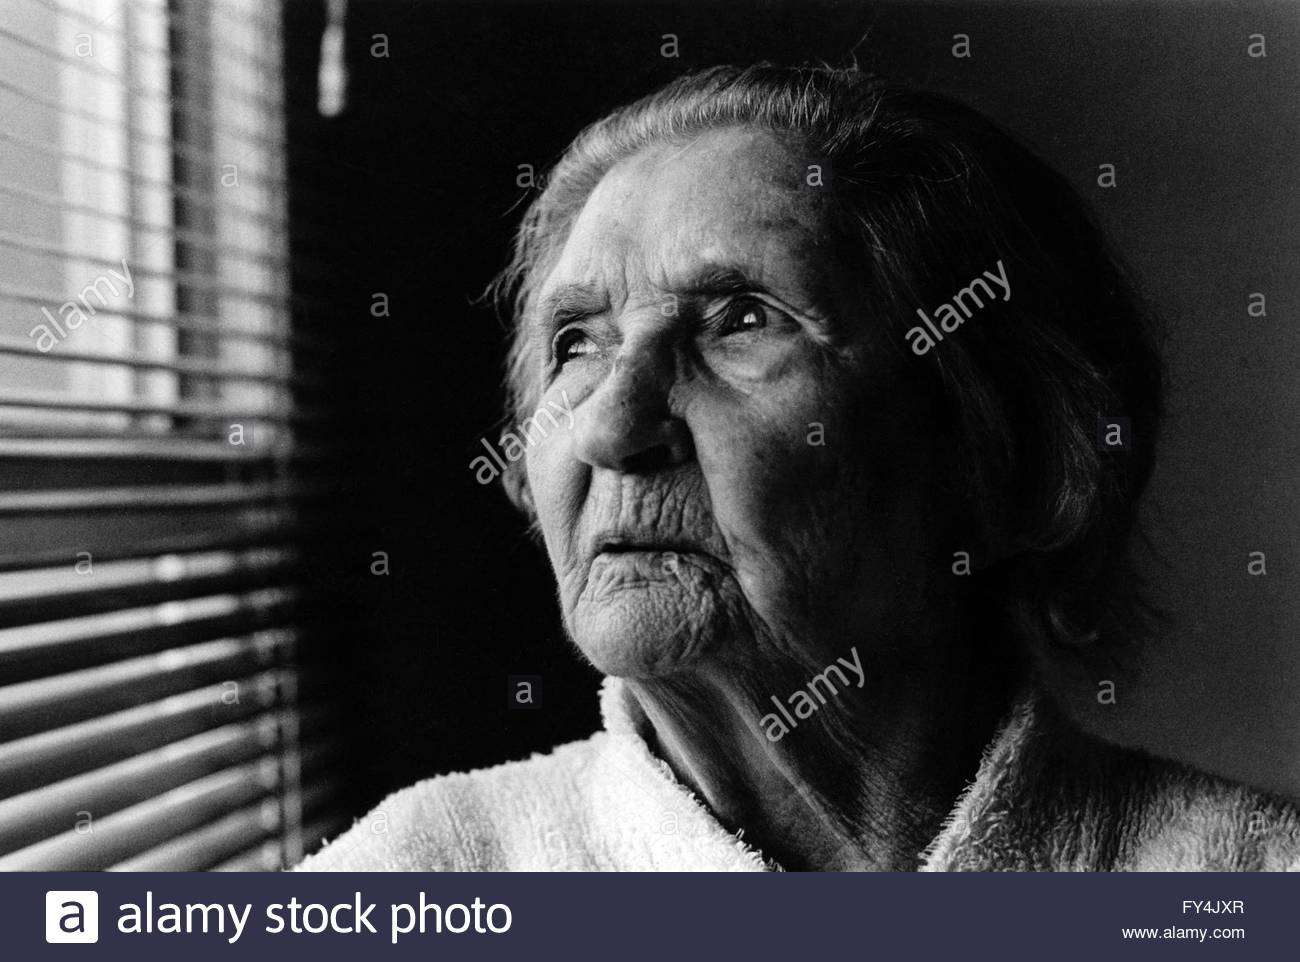 Black and white portrait of a 90 year old woman natural light side lit looking towards window with venetian blind indyfoto